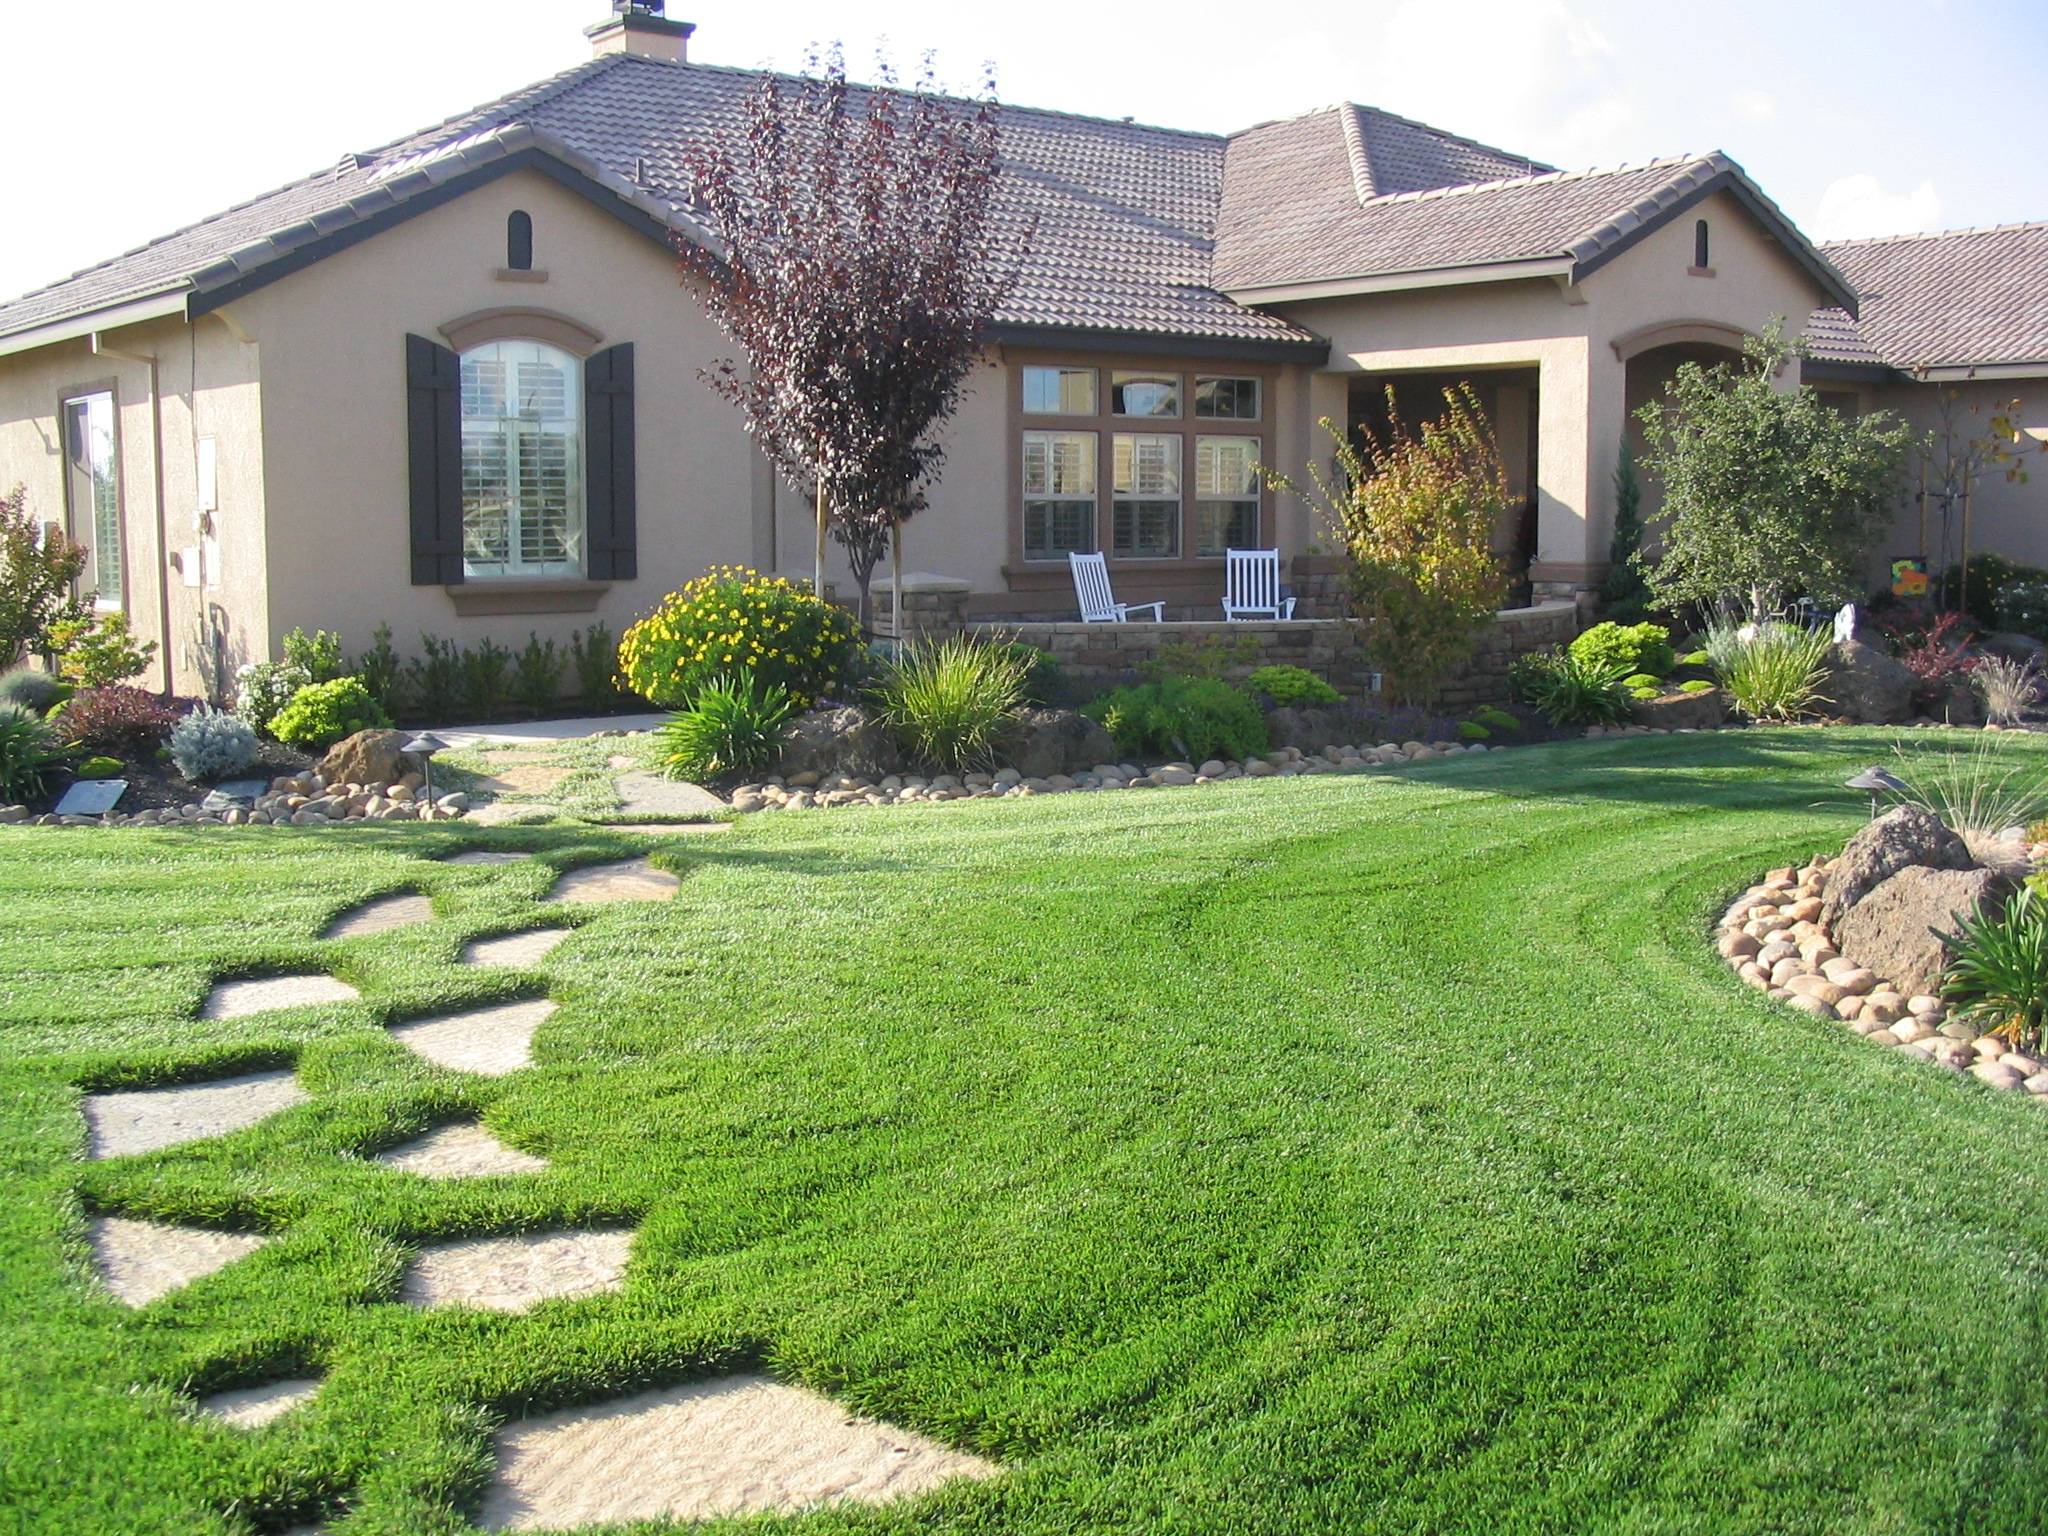 exterior-ranch-house-landscaping-green-landscape-ideas-for-ranch-style-homes-by-the-exterior-area